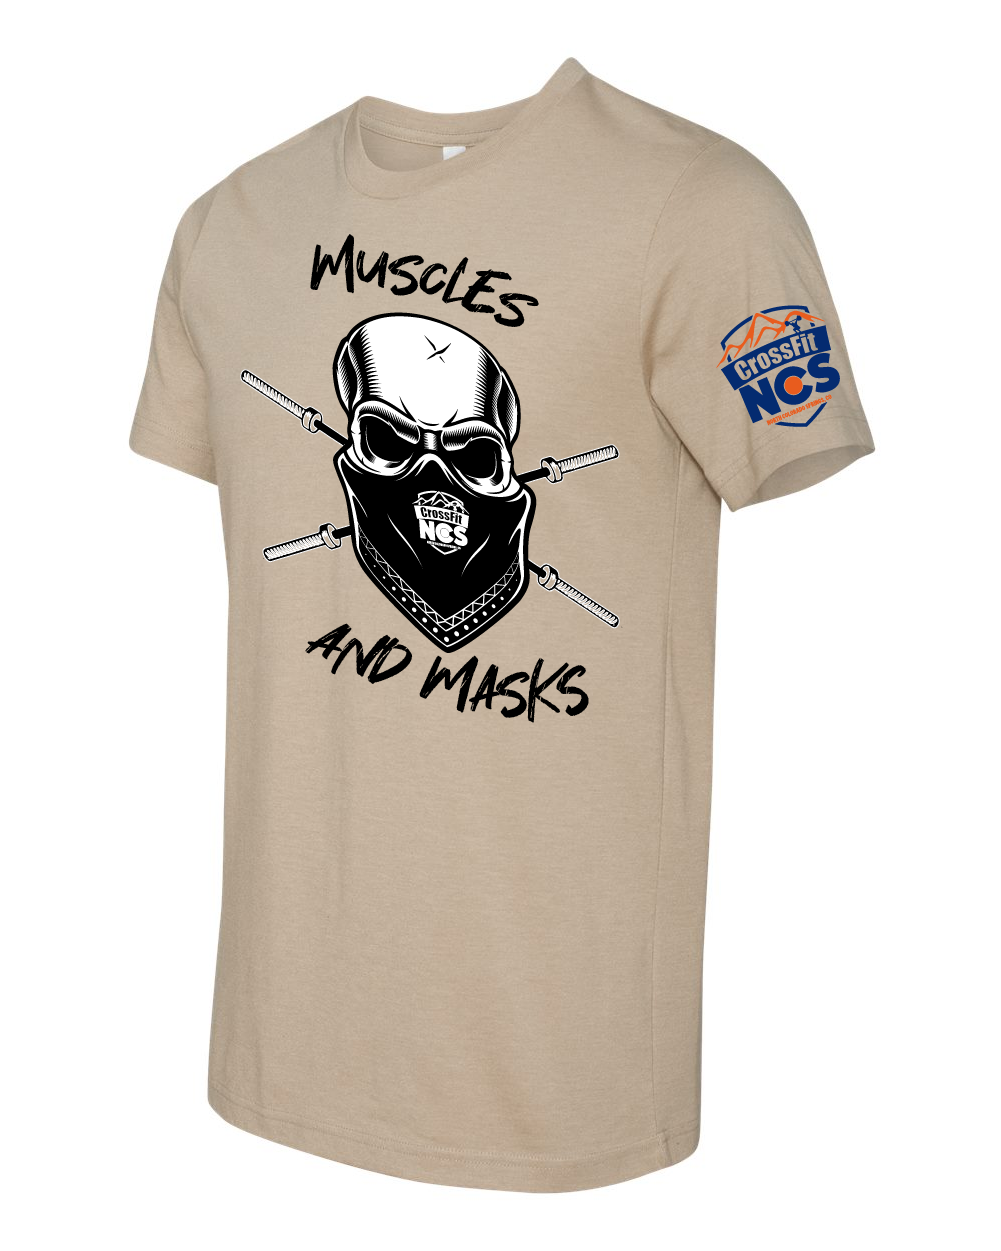 Muscles and Masks Limited Edition Competition T